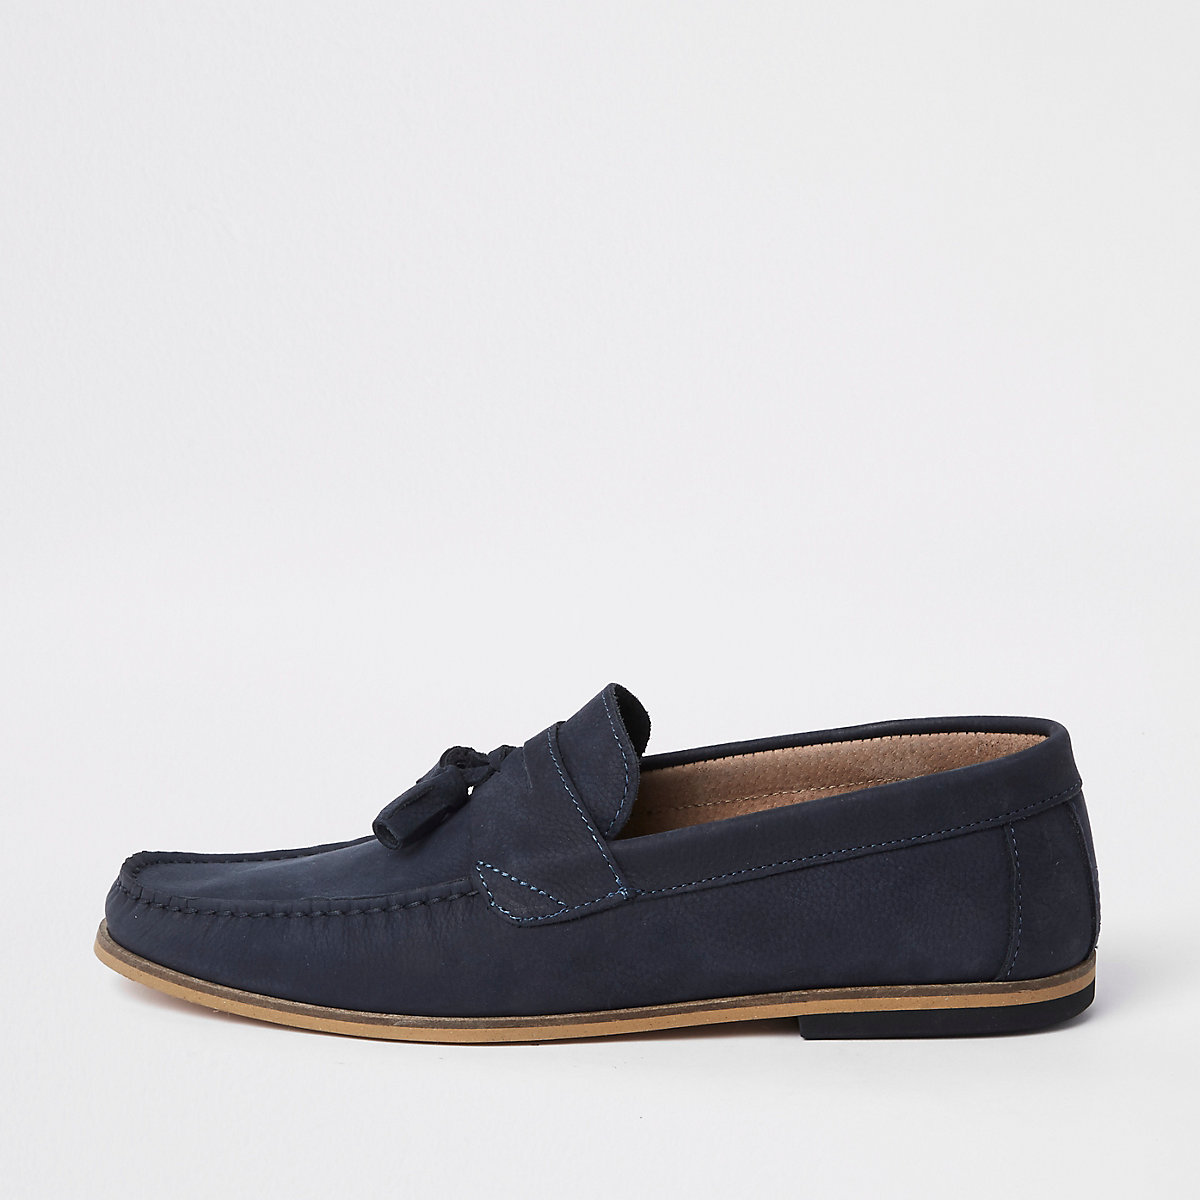 Navy tumbled leather tassel loafers